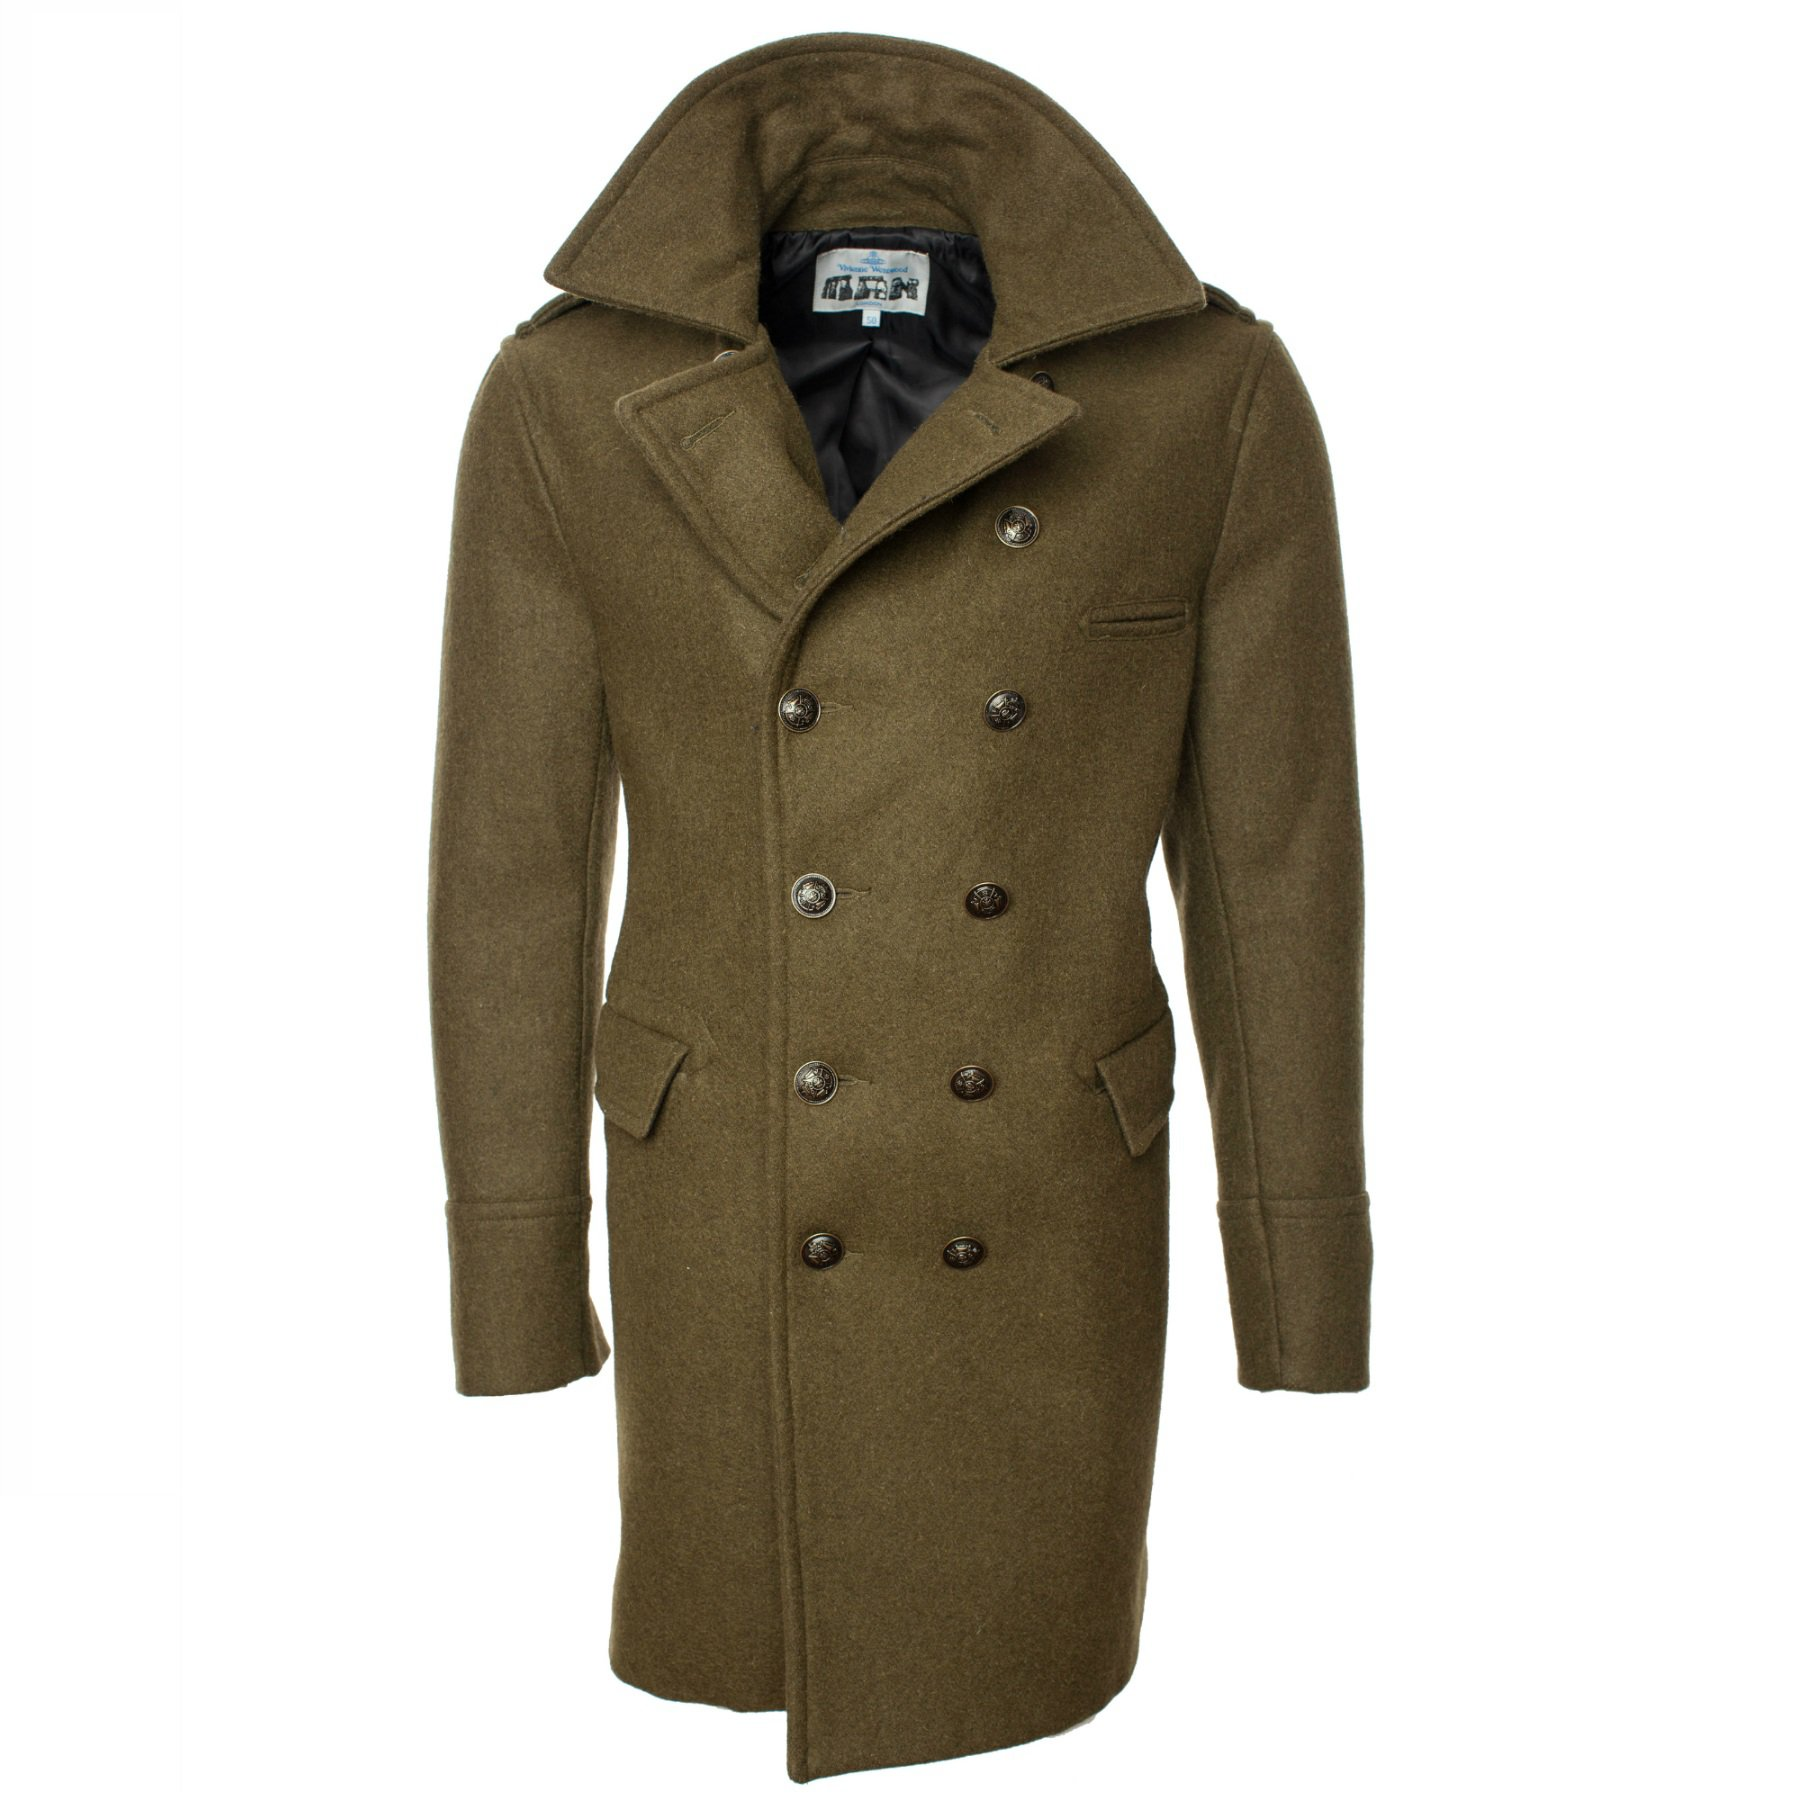 VIVIENNE WESTWOOD Double Breasted Pea Coat